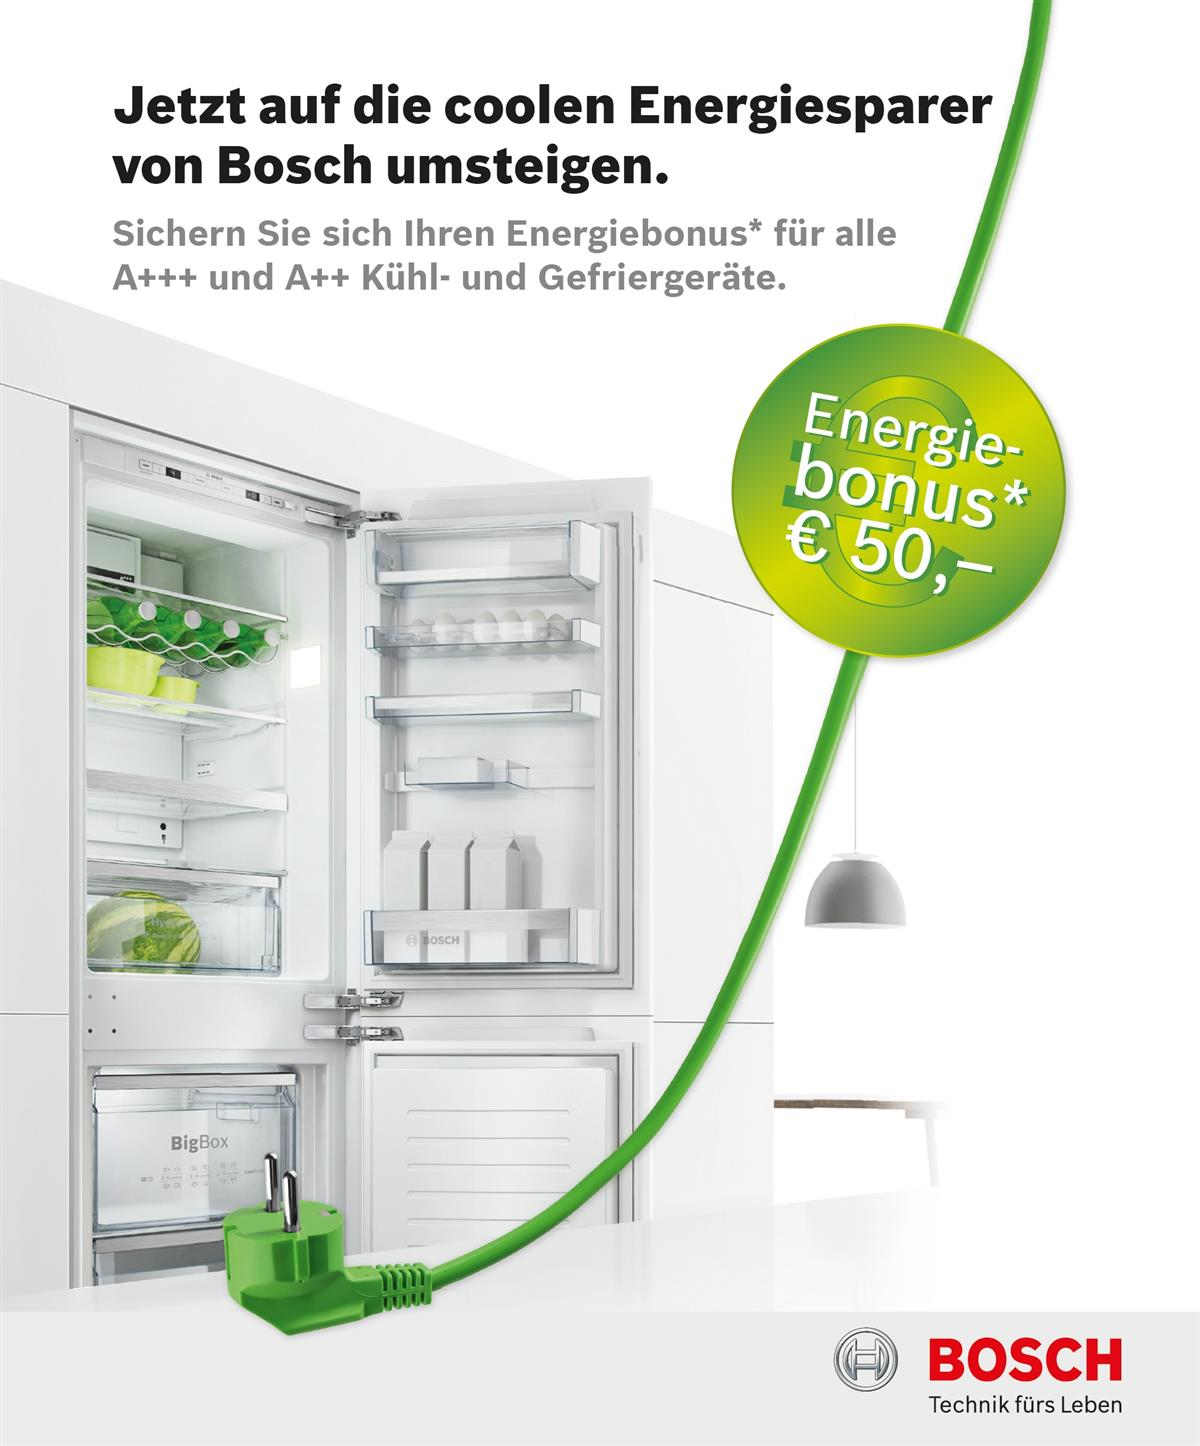 bosch aktion jetzt mit dem energiebonus 50 eur sparen angebote. Black Bedroom Furniture Sets. Home Design Ideas